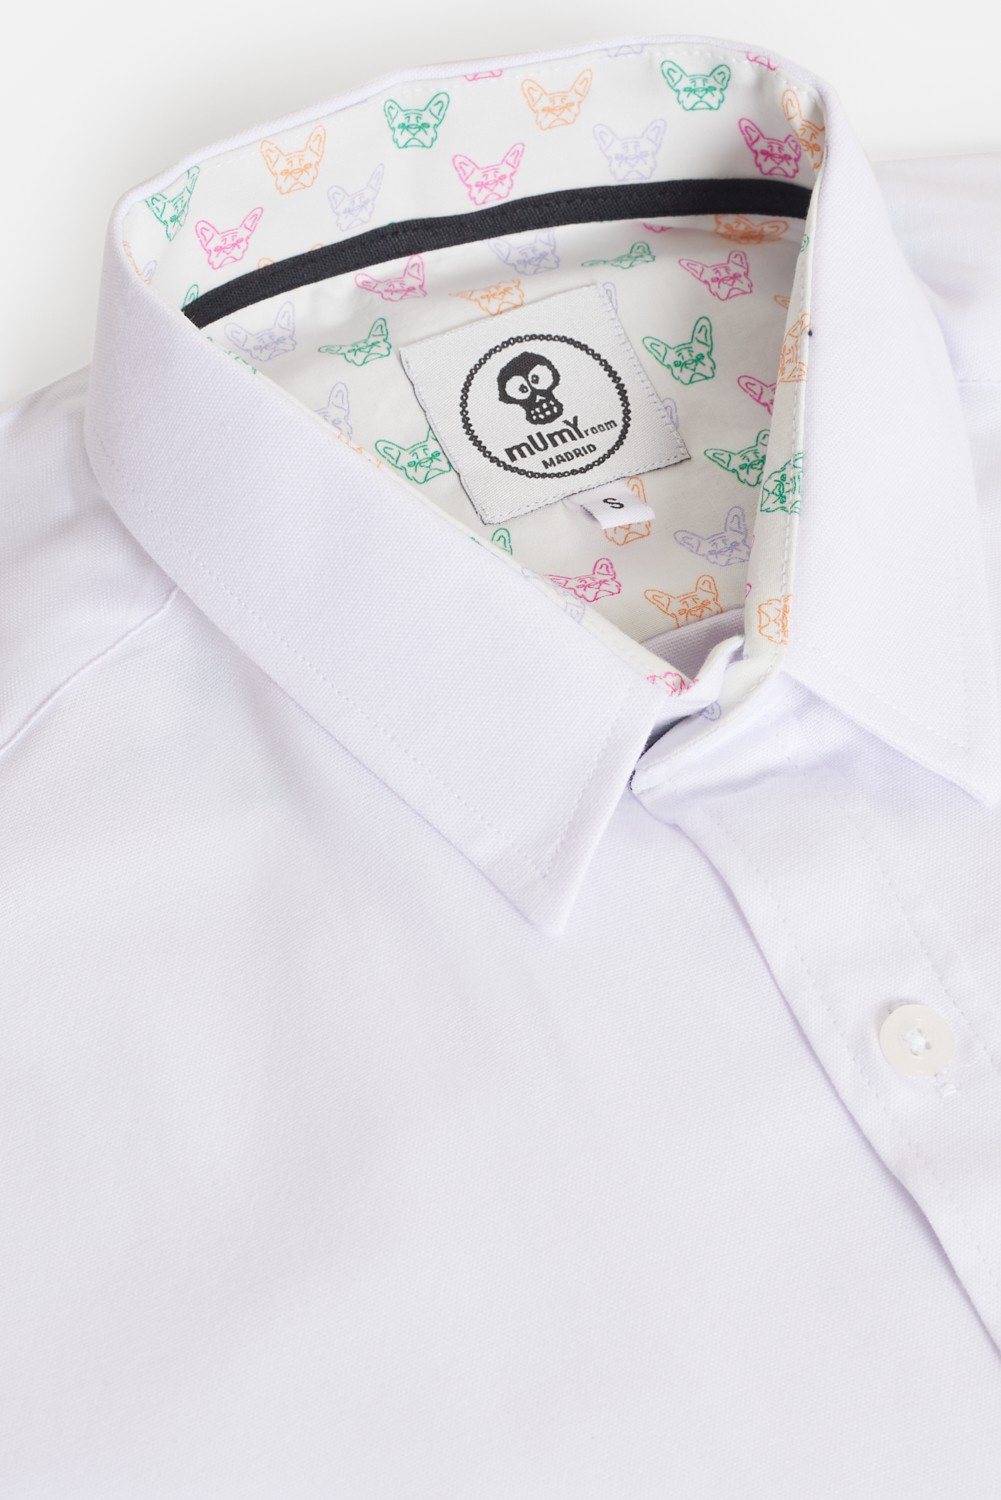 CAMISA ESTAMPADA CLASSIC BULLDOGS DE COLORES